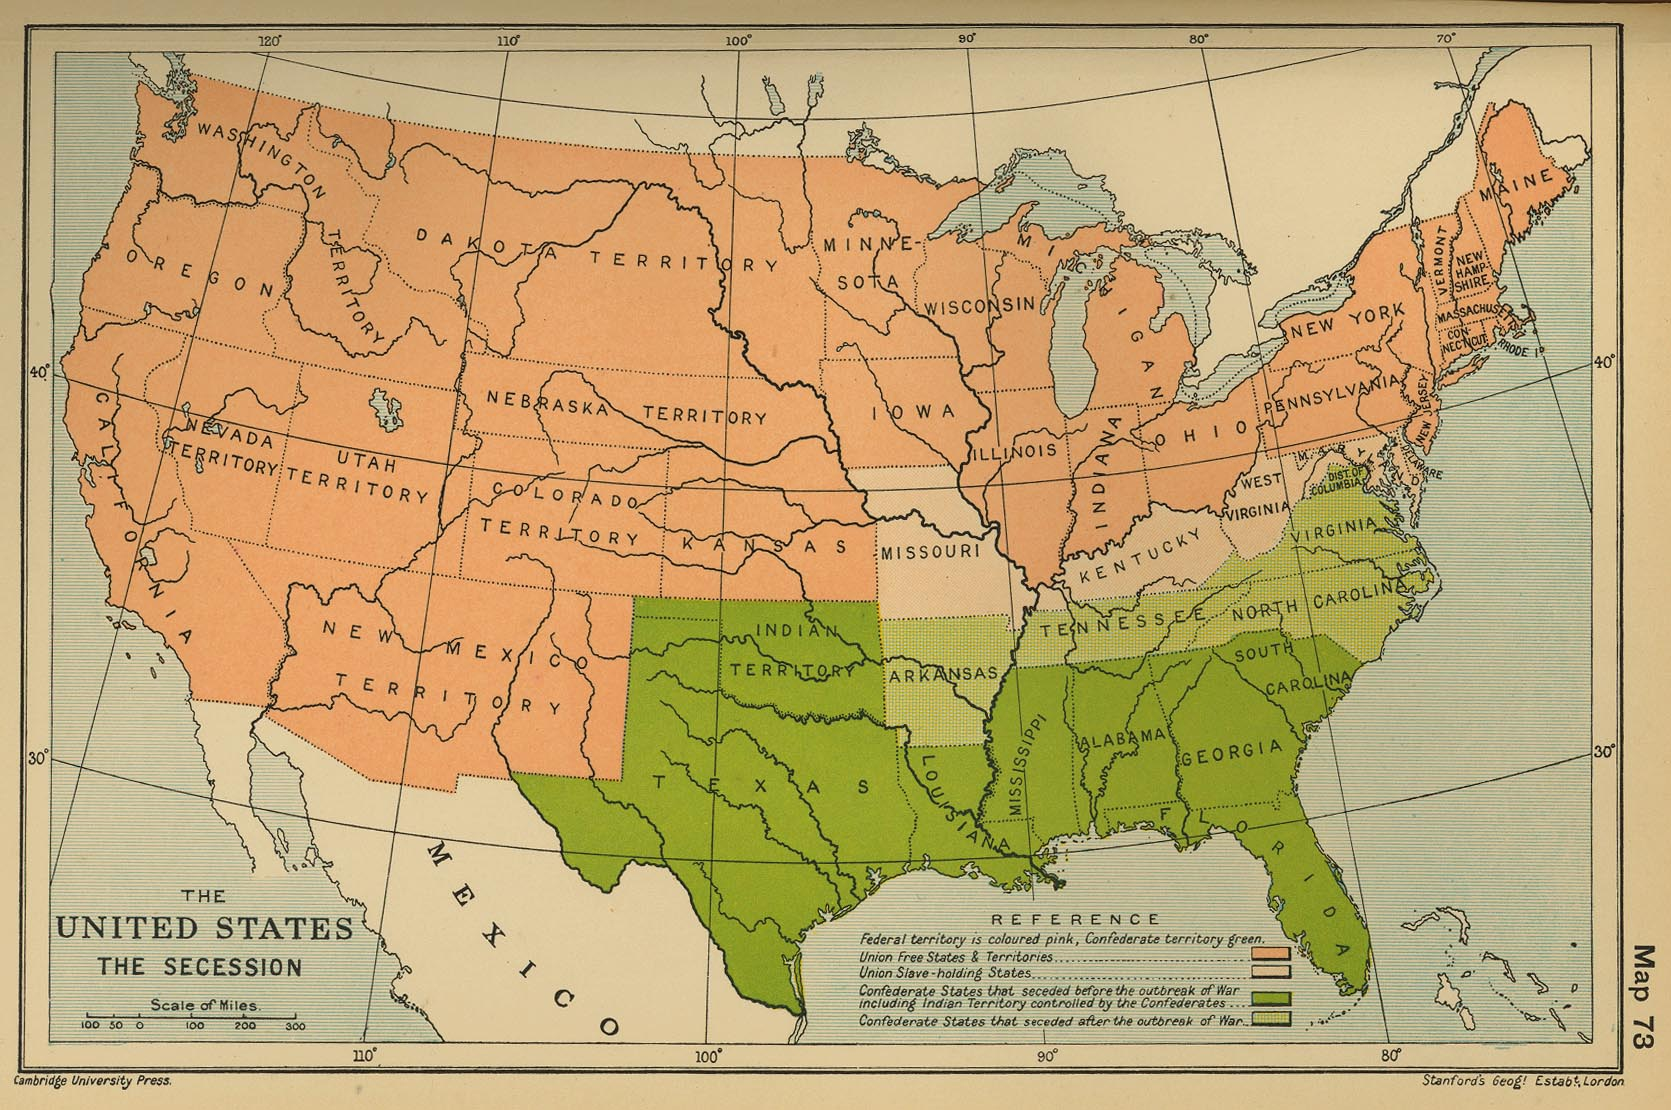 Map 72 The United States The Secession